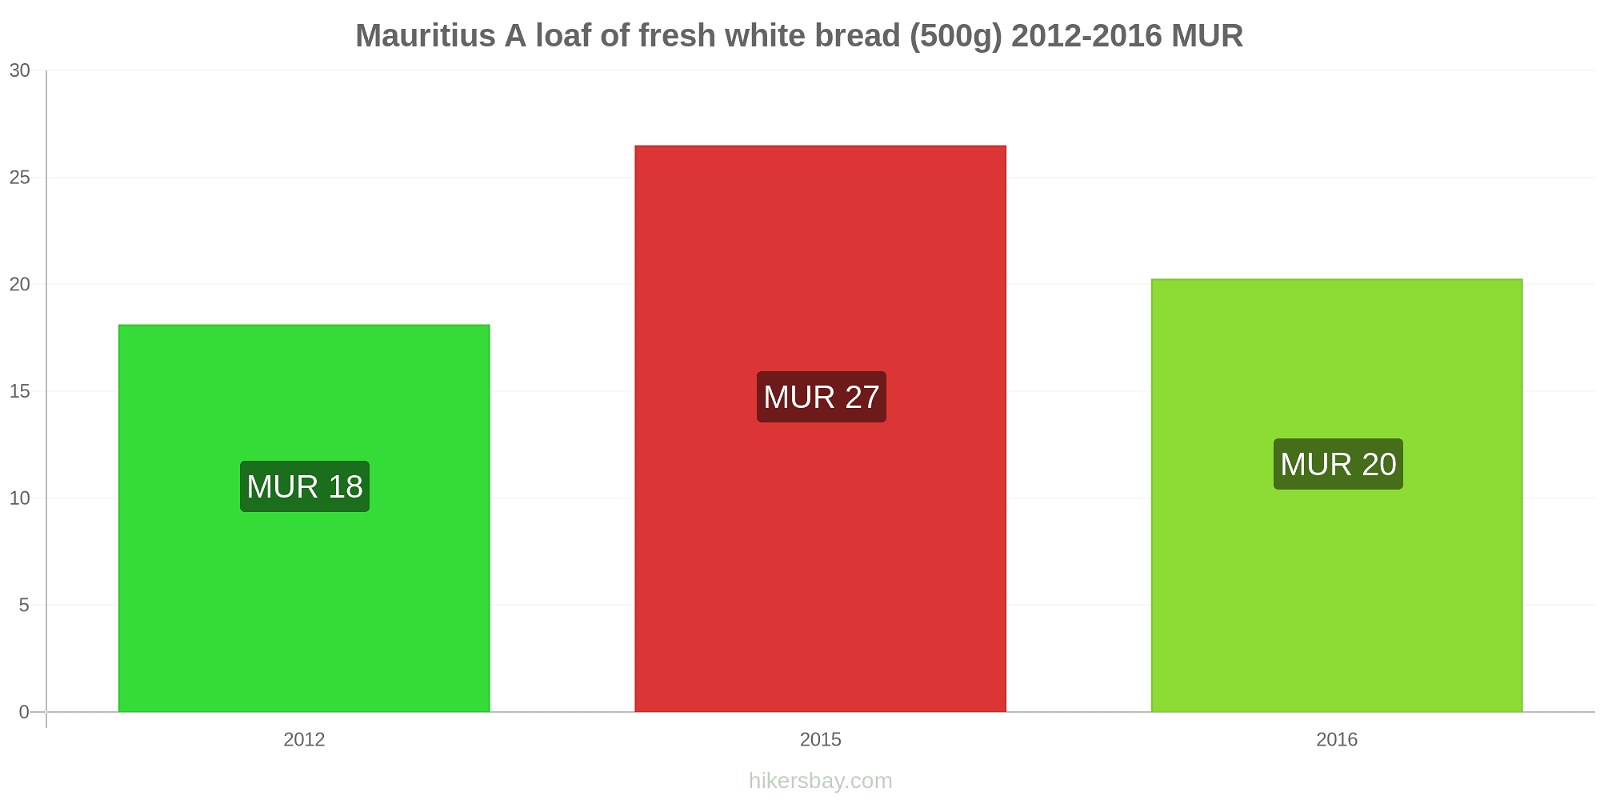 Mauritius price changes A loaf of fresh white bread (500g) hikersbay.com